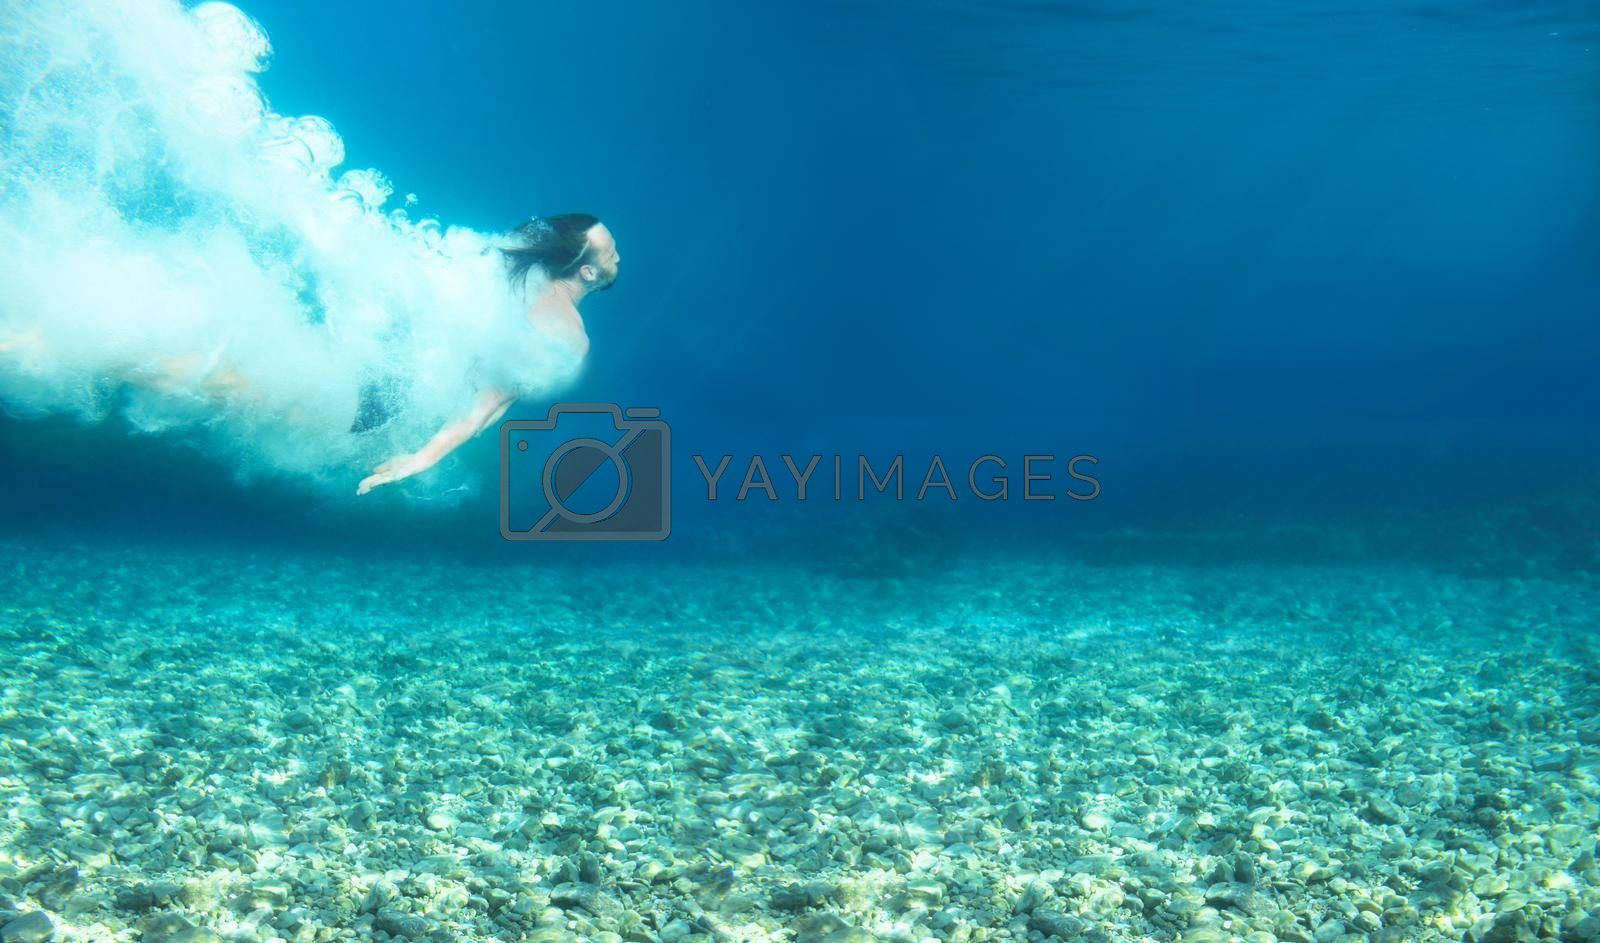 Man swimming under water in blue transparent sea underwater shot copy space for text